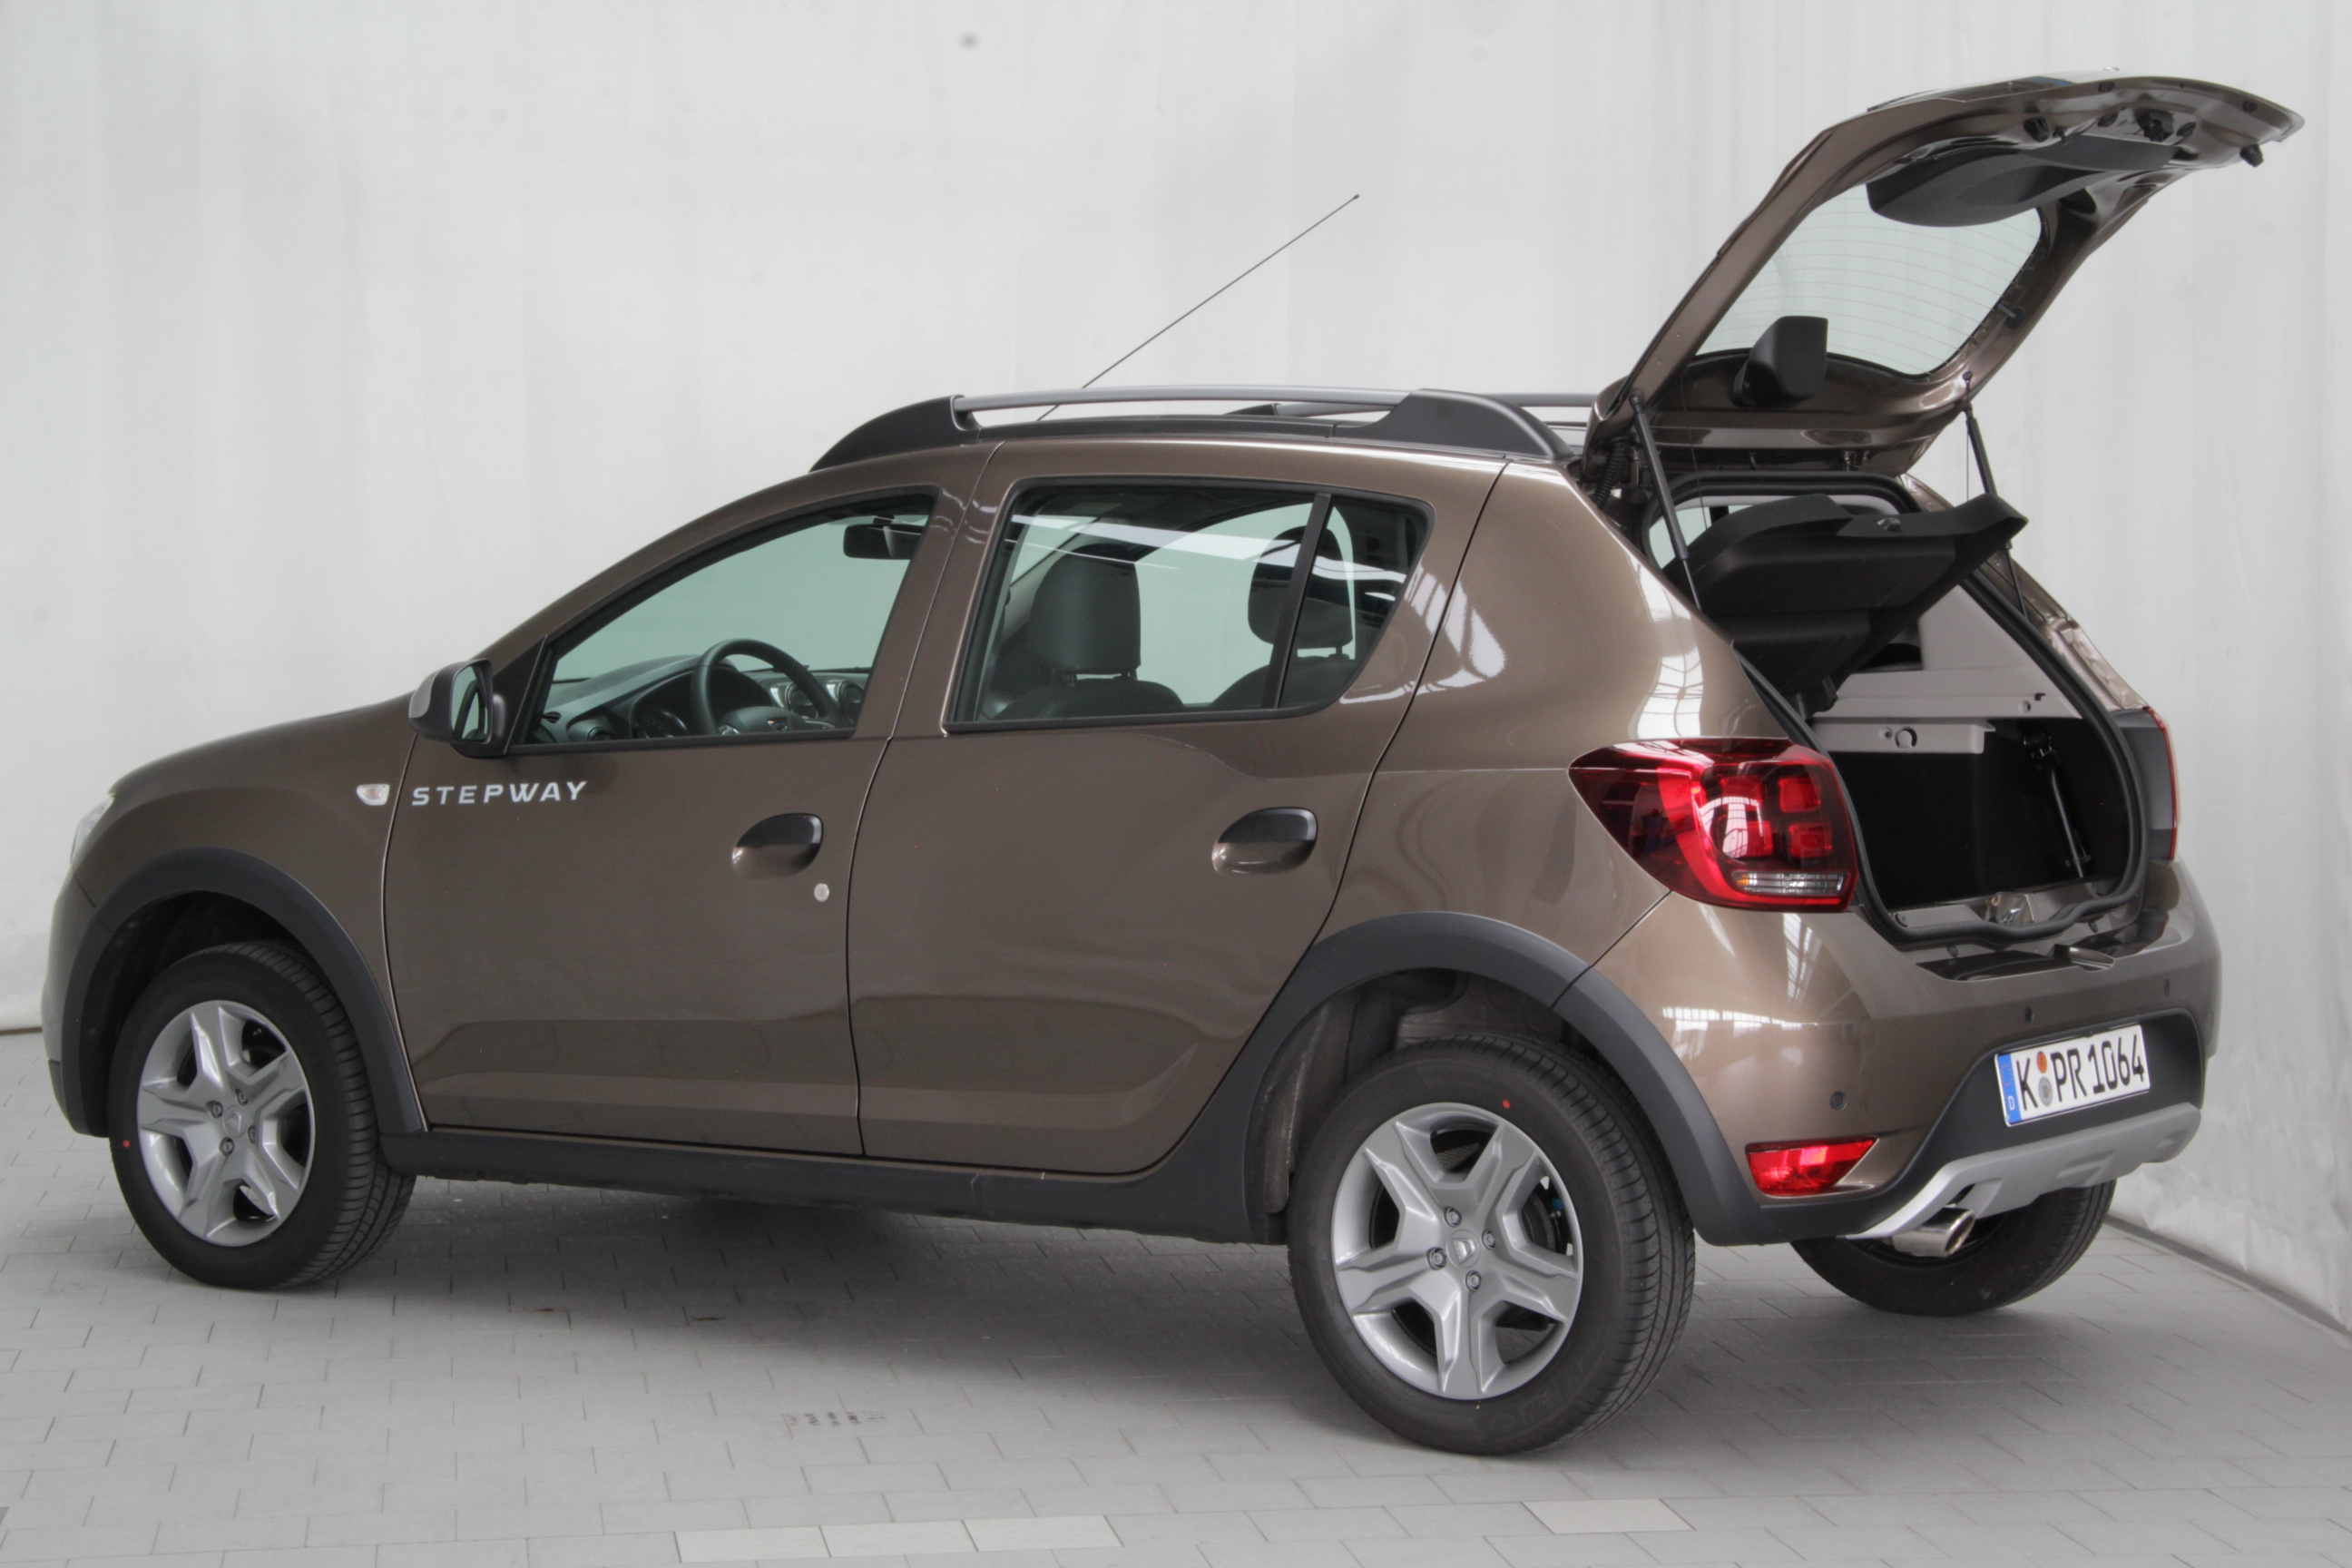 dacia sandero test prijzen en specificaties. Black Bedroom Furniture Sets. Home Design Ideas